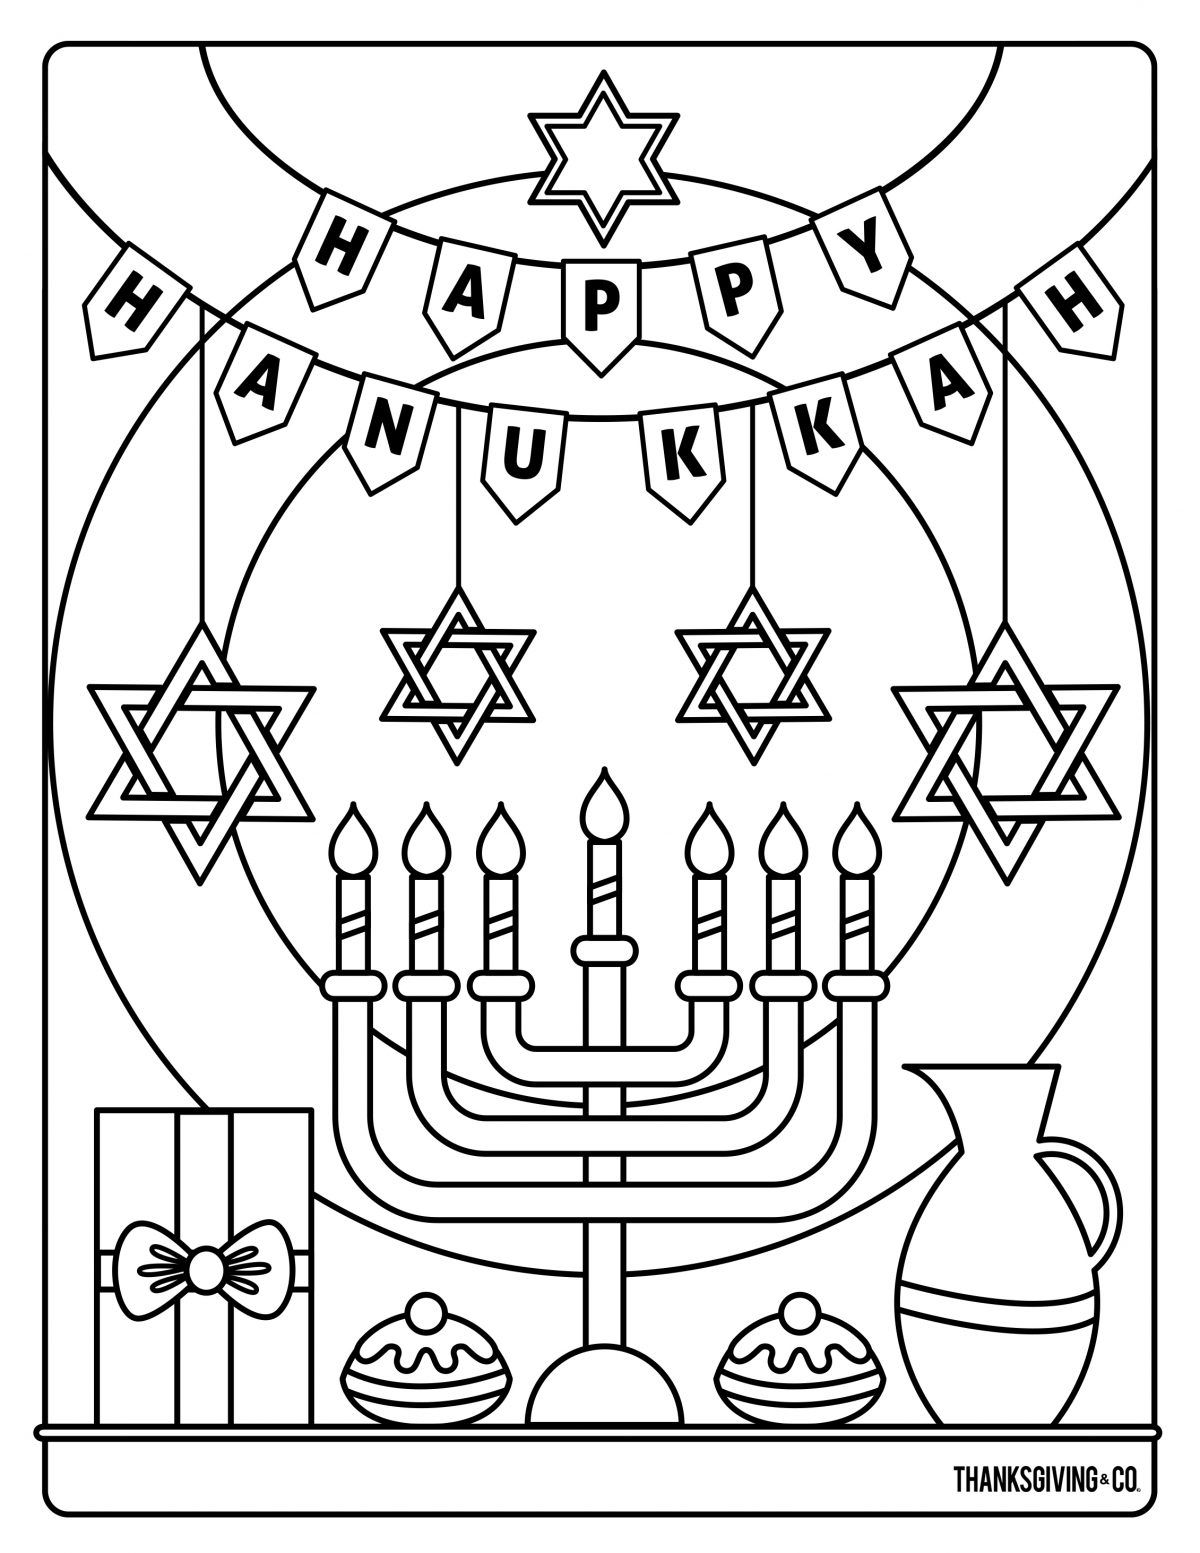 4 Hanukkah Coloring Pages You Can Print And Share With Your Kids Hannukah Crafts Coloring Pages Hanukkah Crafts